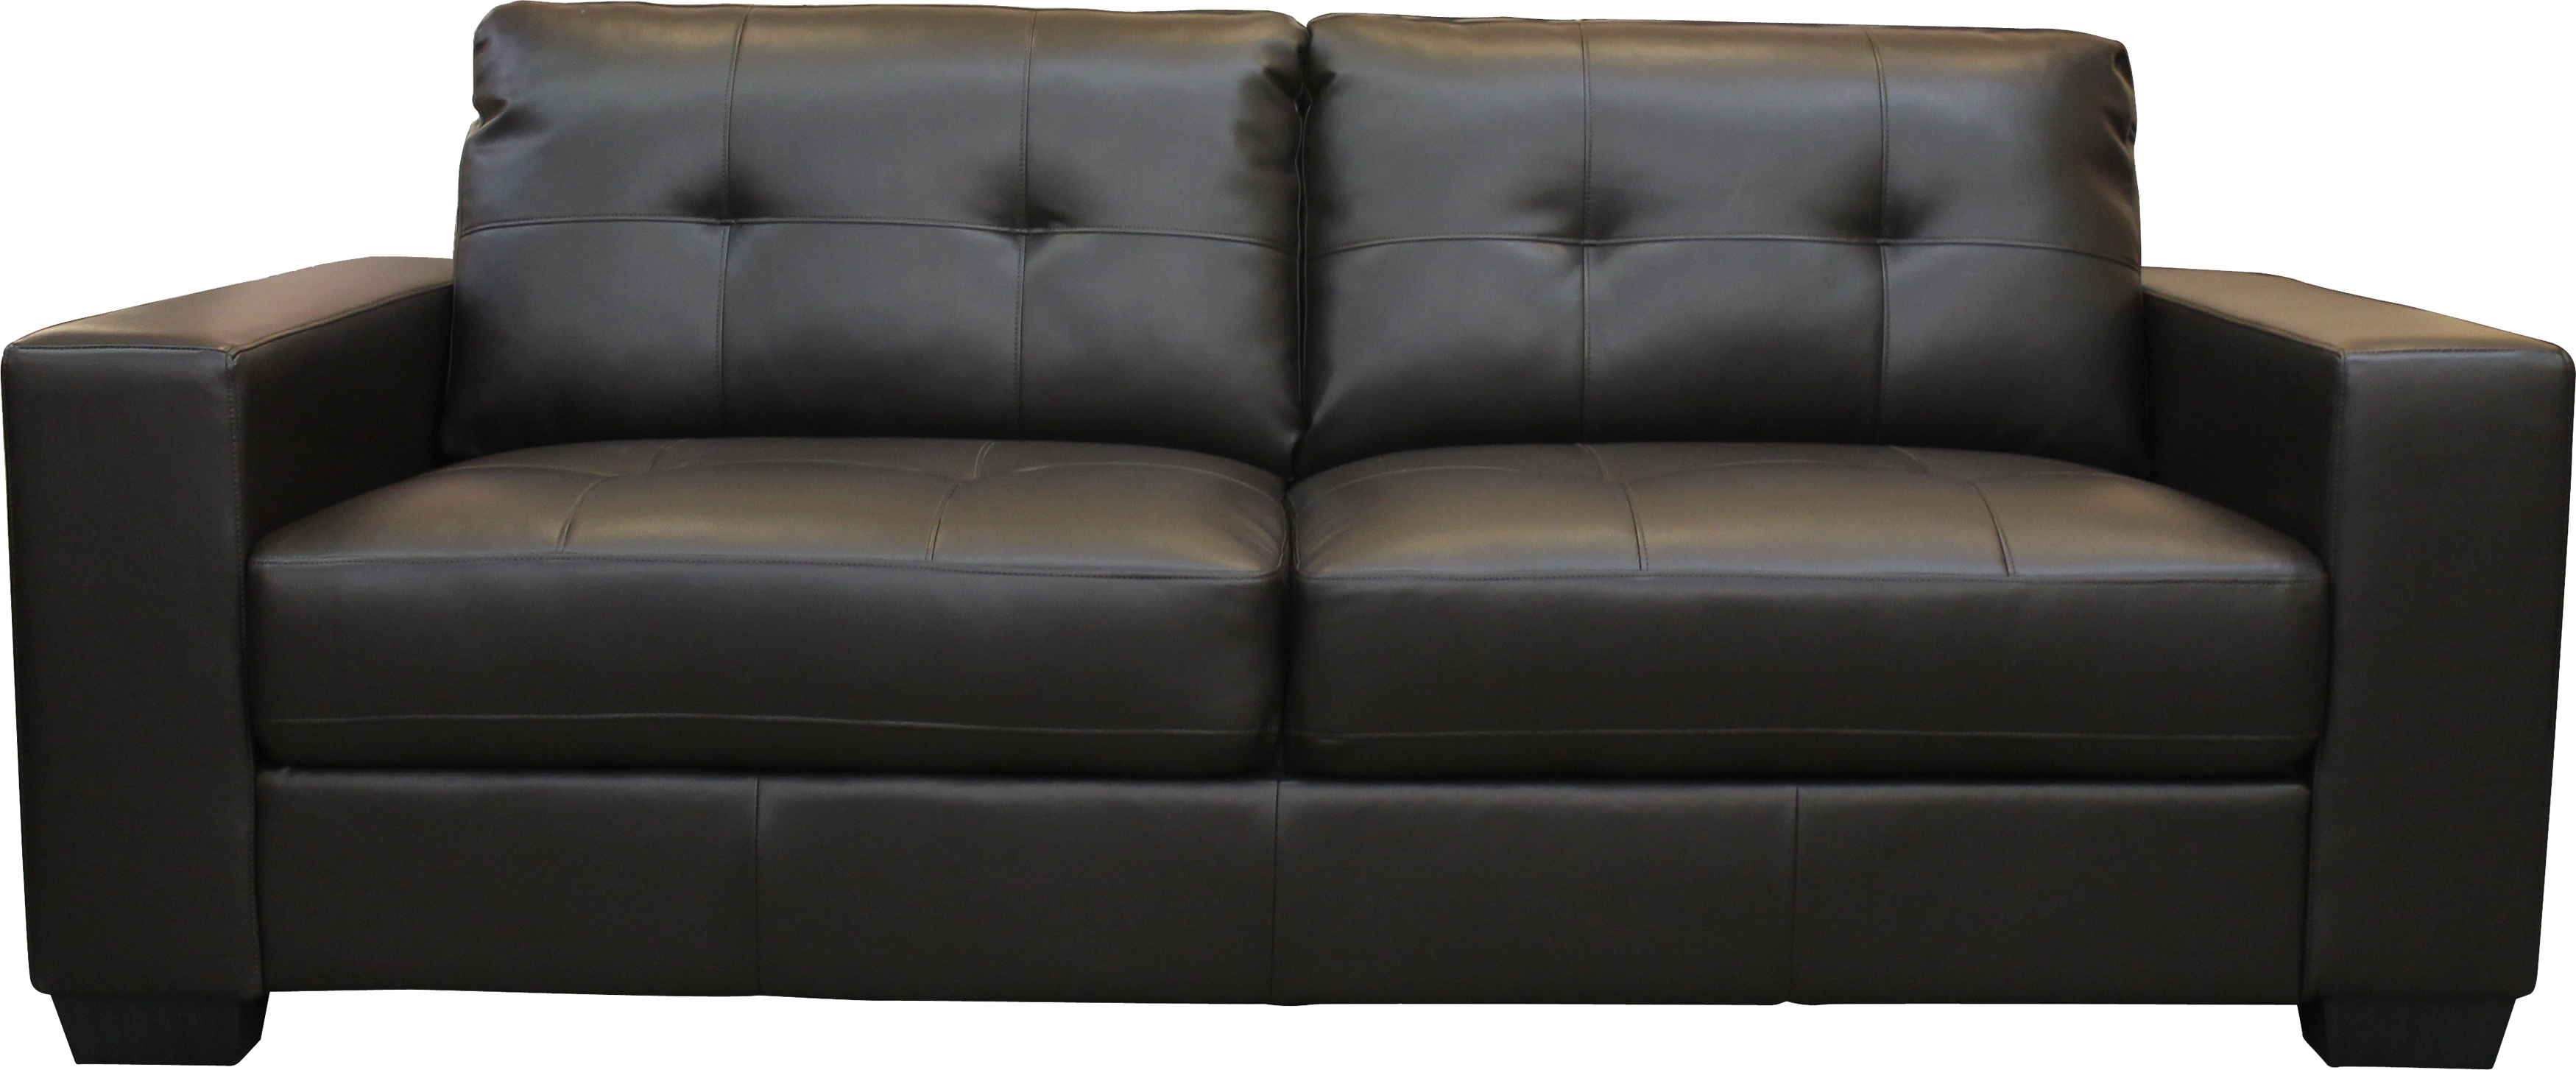 Sofa HD PNG